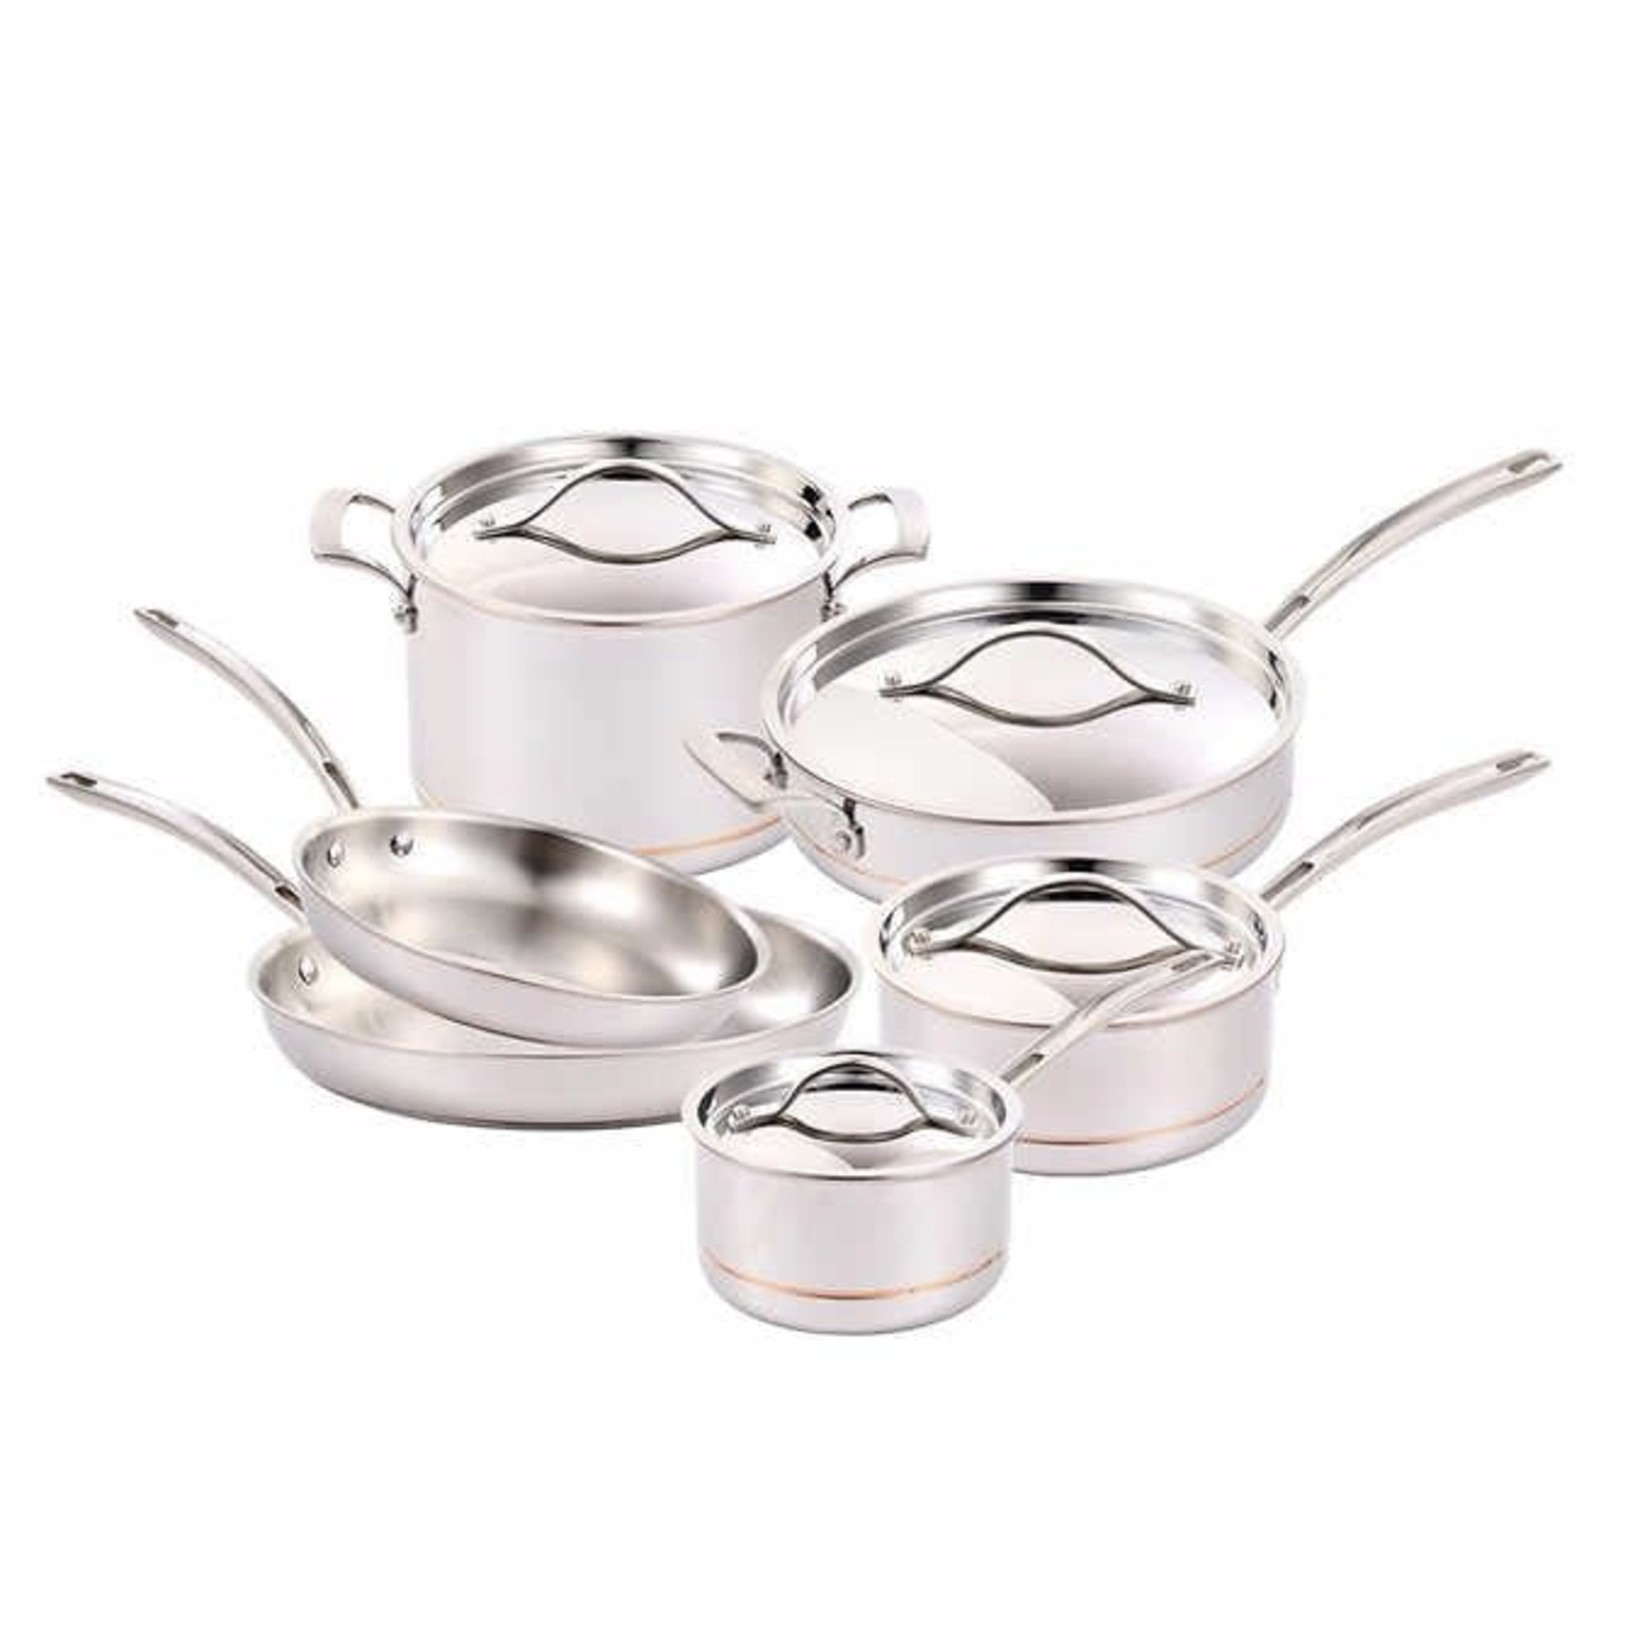 Kirkland Signature 10PC Stainless Steel 5-PLY Clad Cookware Set *Open box, Some pieces gently used